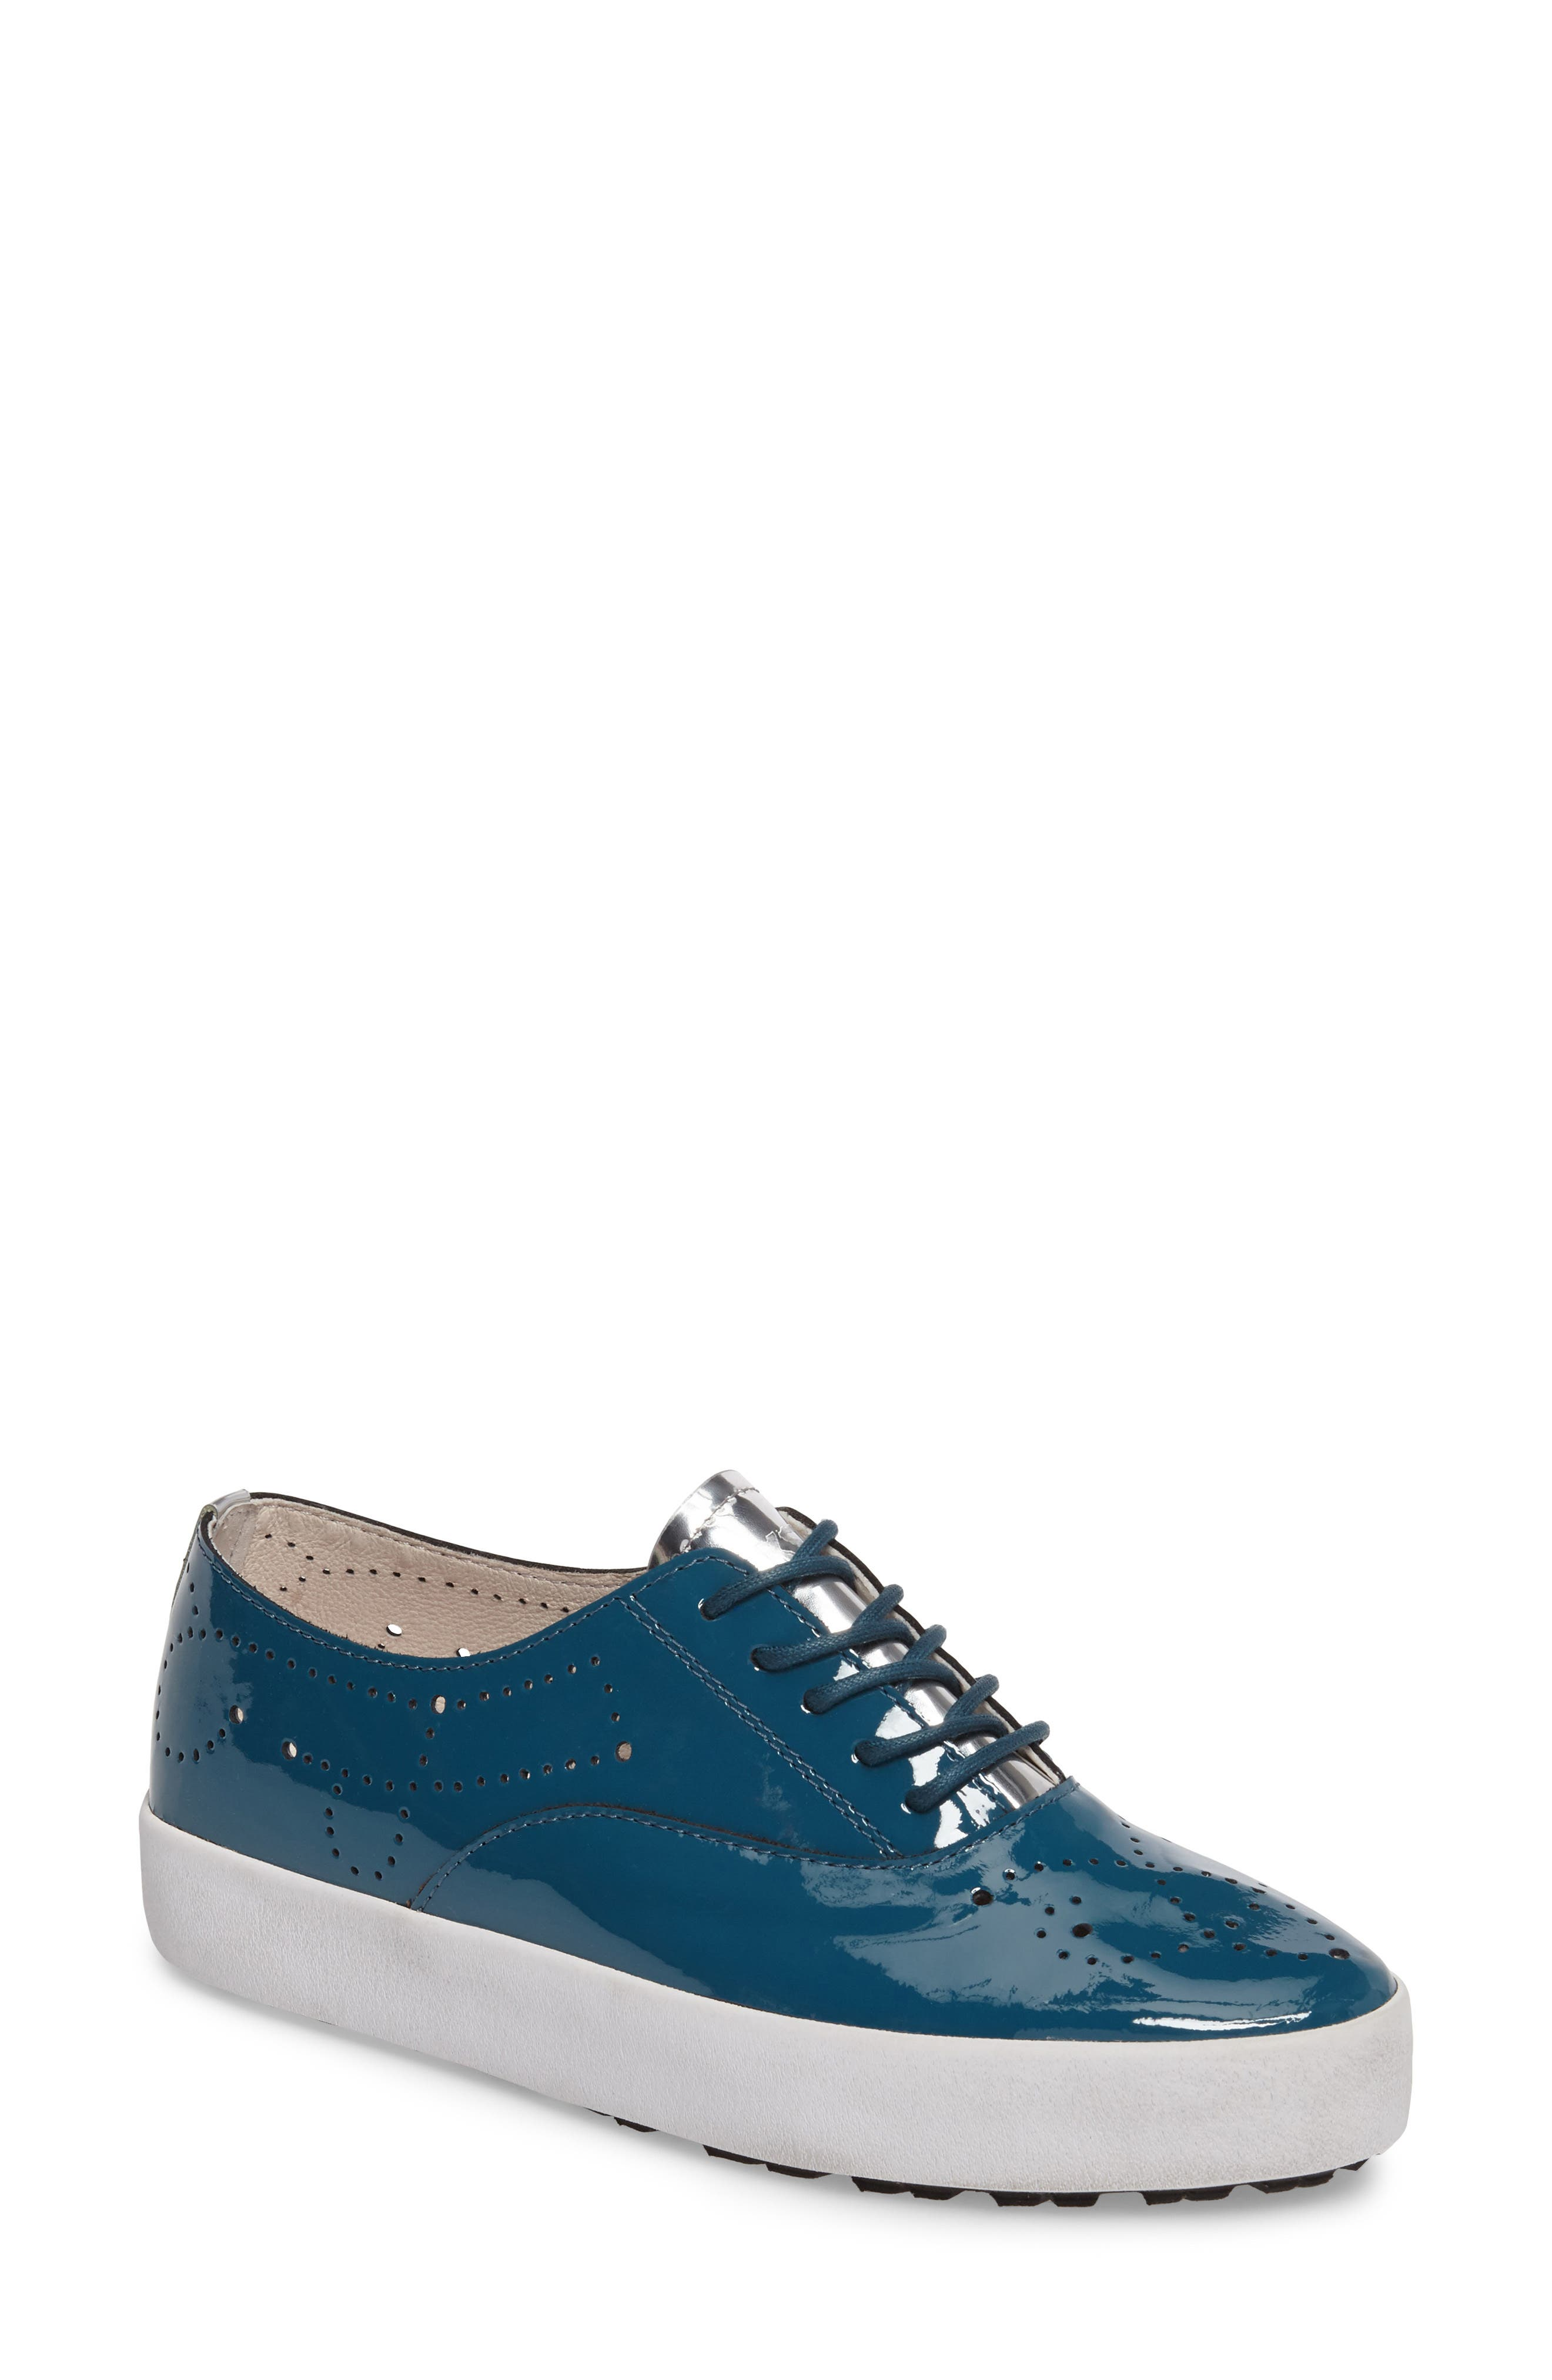 NL41 Sneaker,                             Main thumbnail 1, color,                             Turquoise Patent Leather